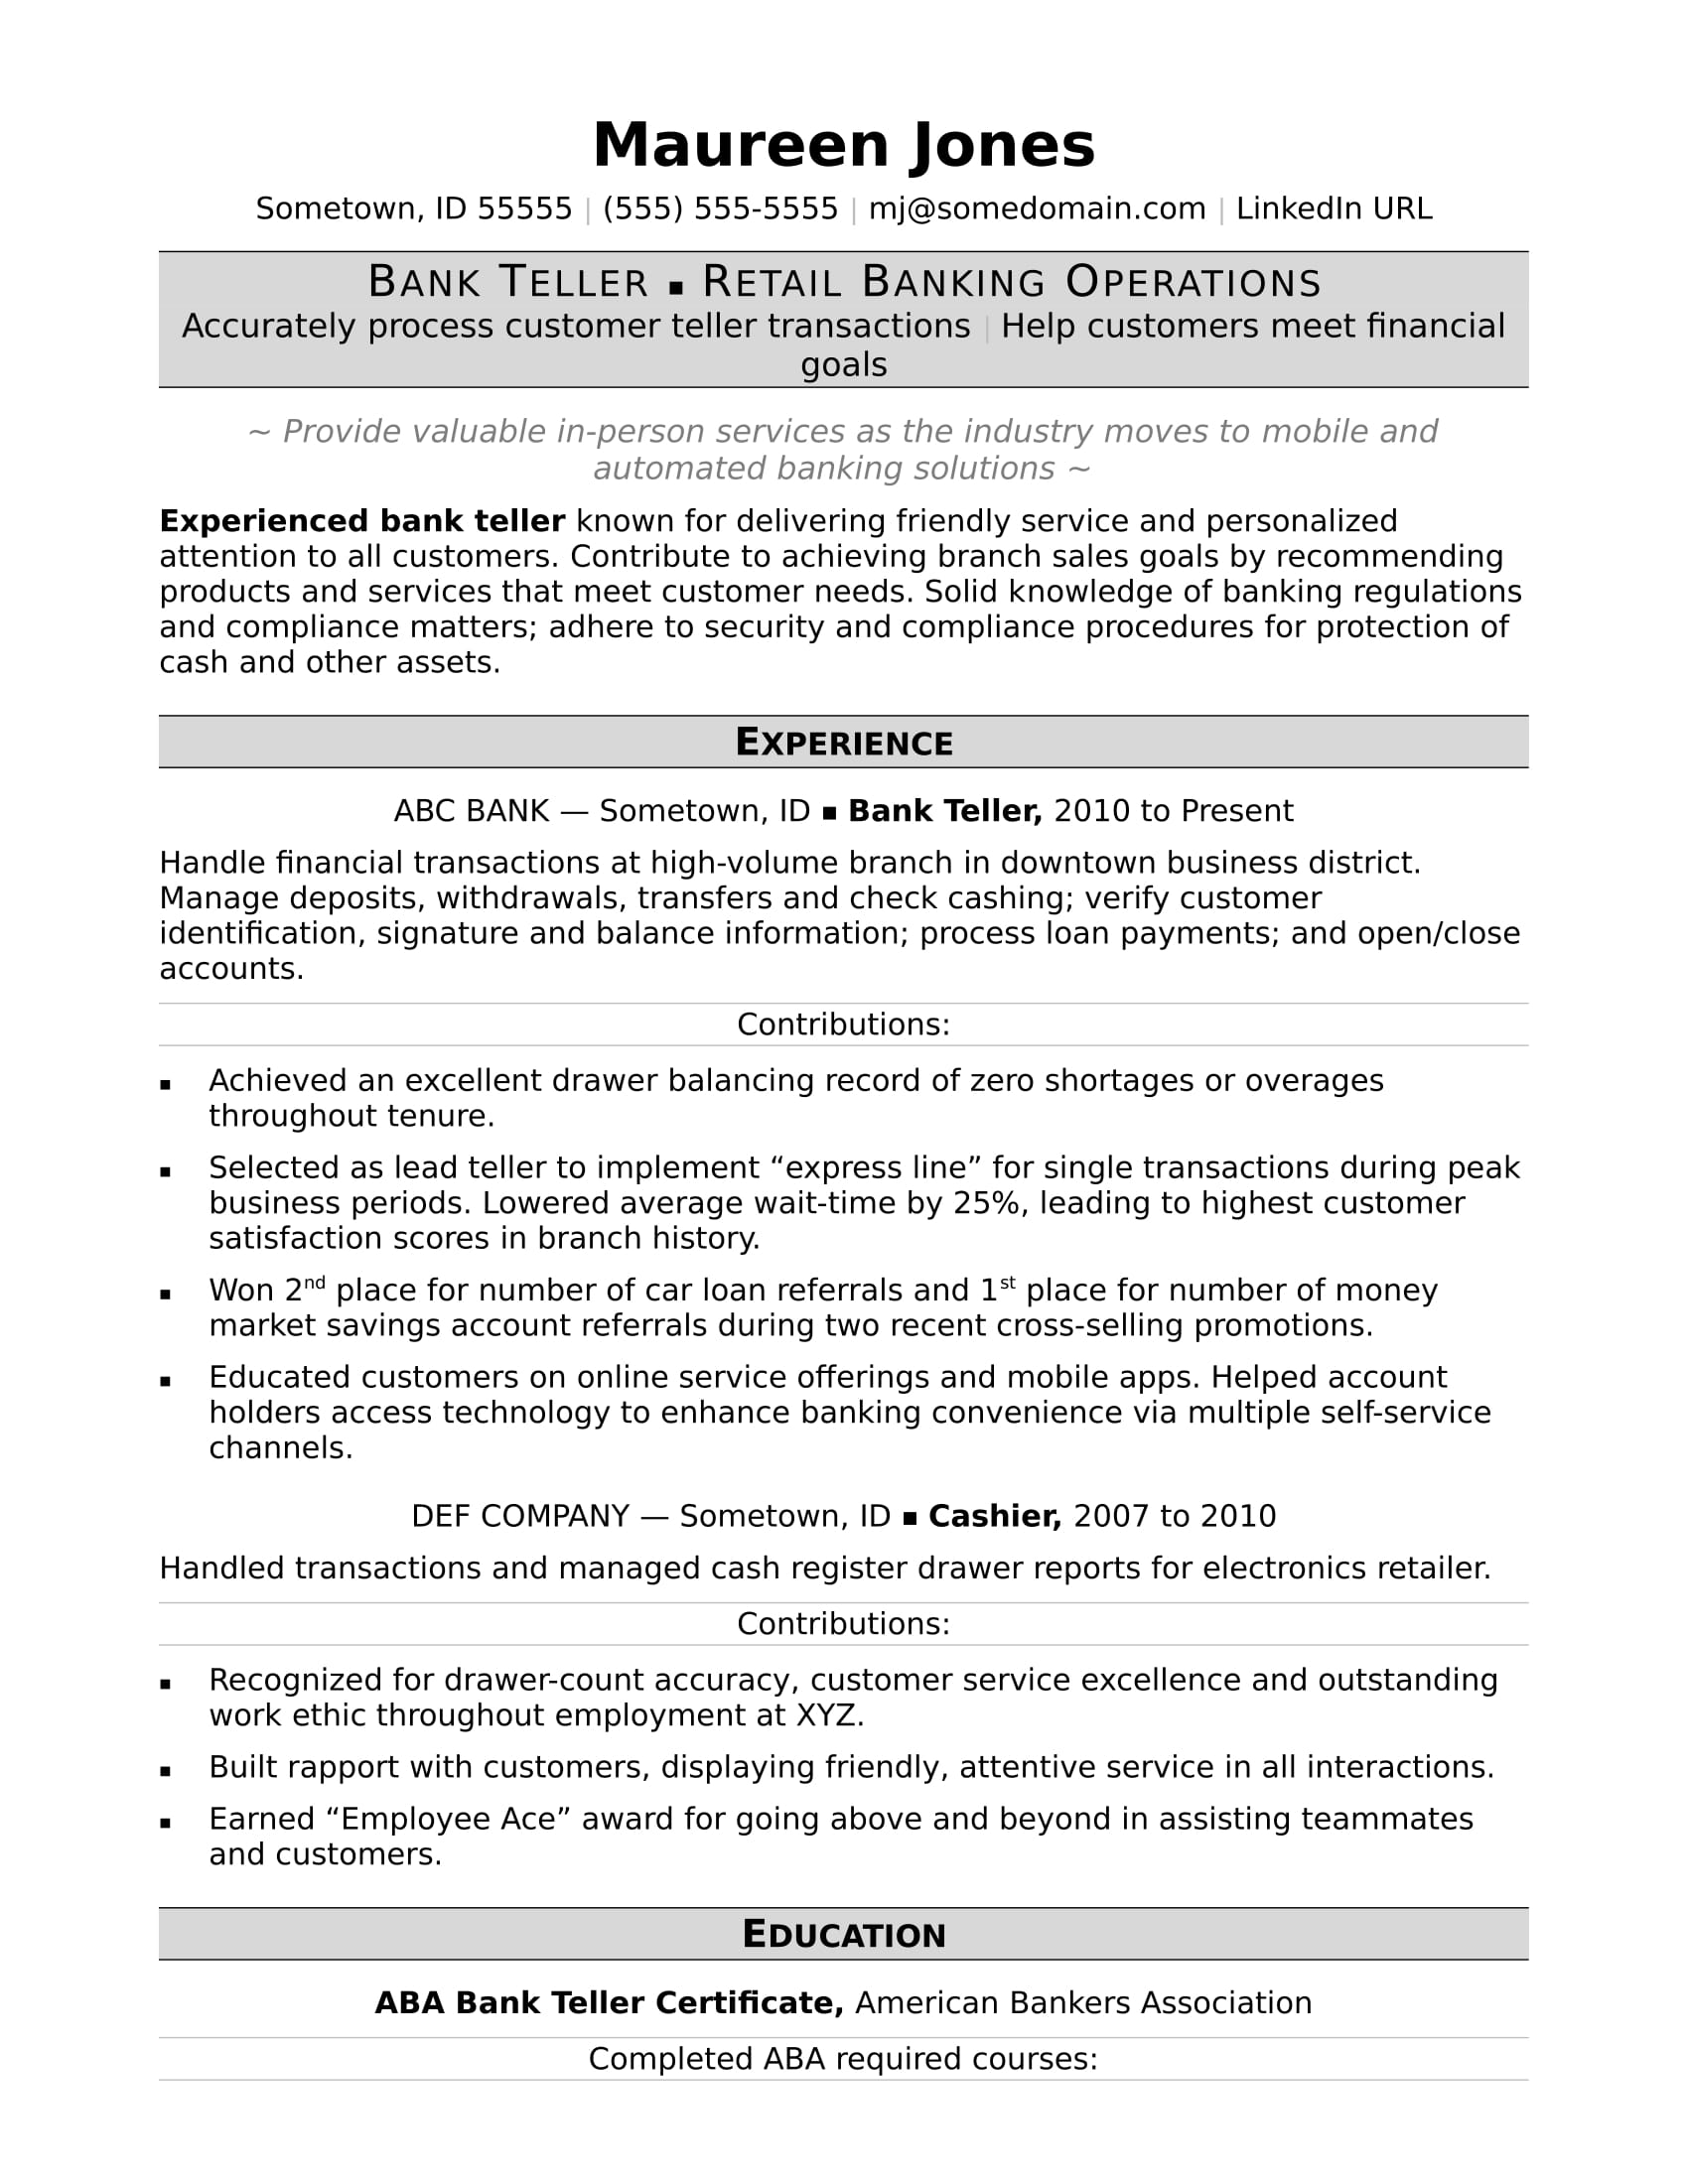 Bank Teller Resume Sample In Resume For A Bank Teller